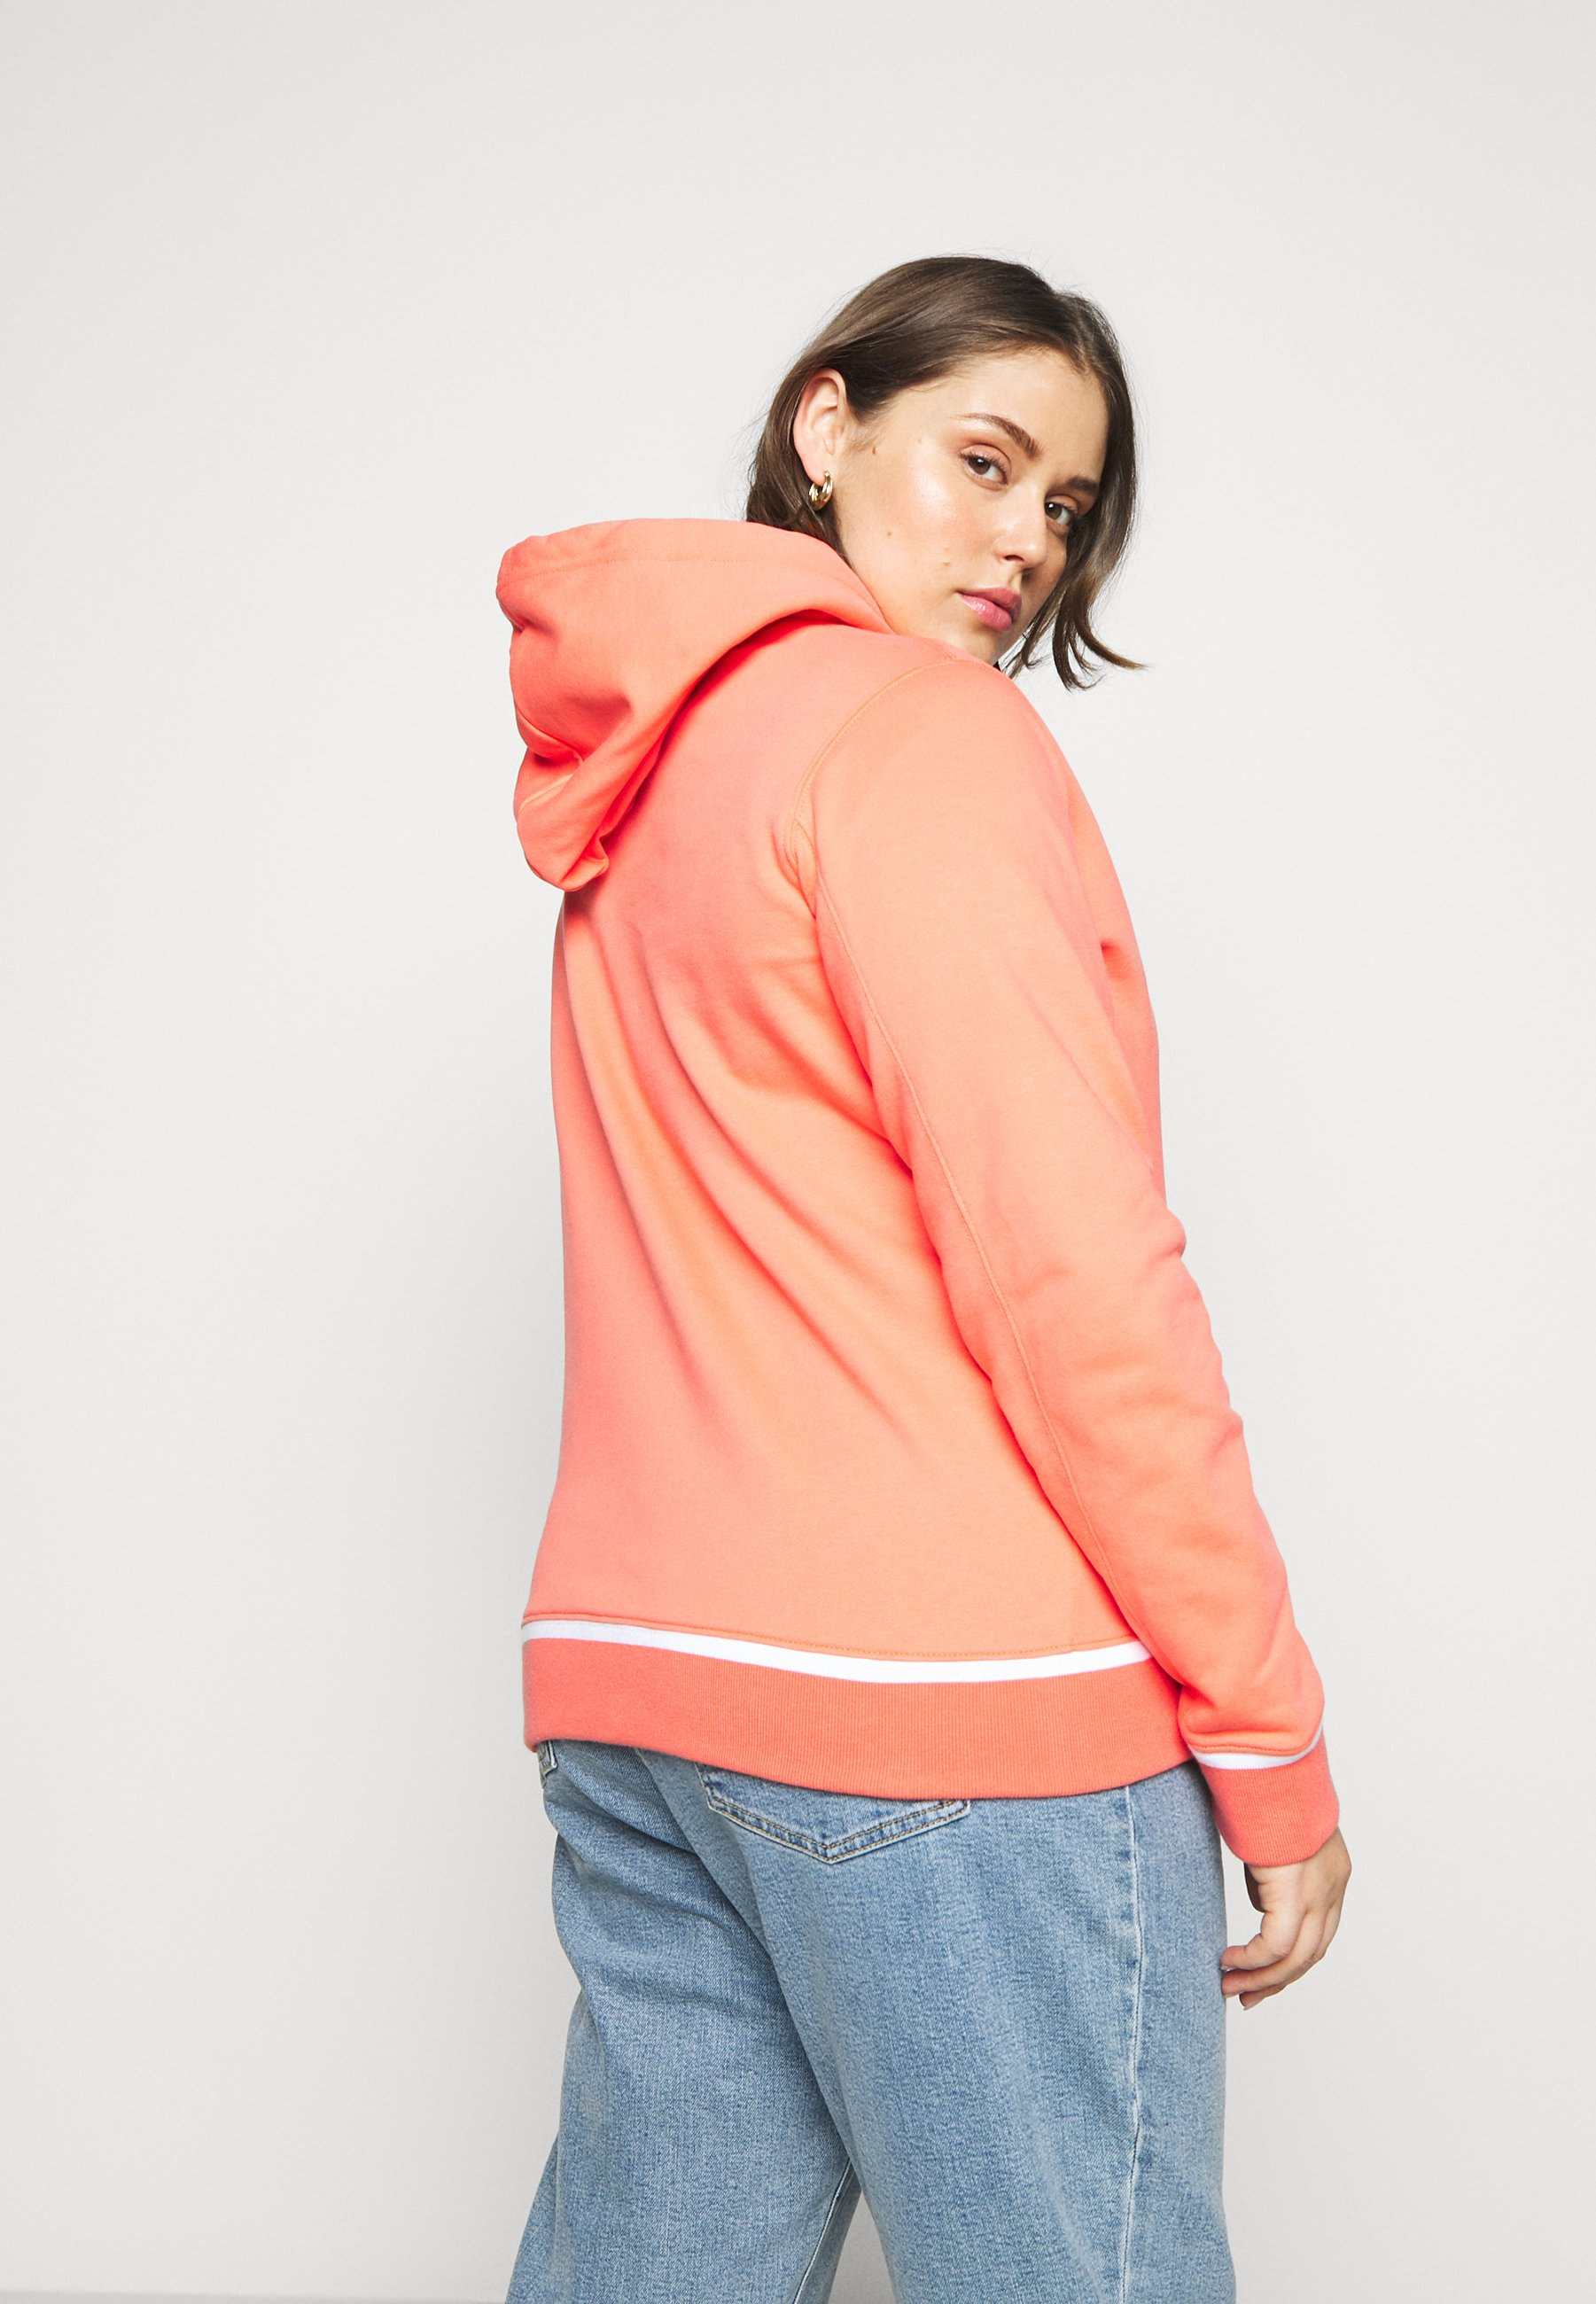 Reliable Women's Clothing Calvin Klein Jeans Plus EMBROIDERY HOODIE Hoodie coral DcGJqVRf1